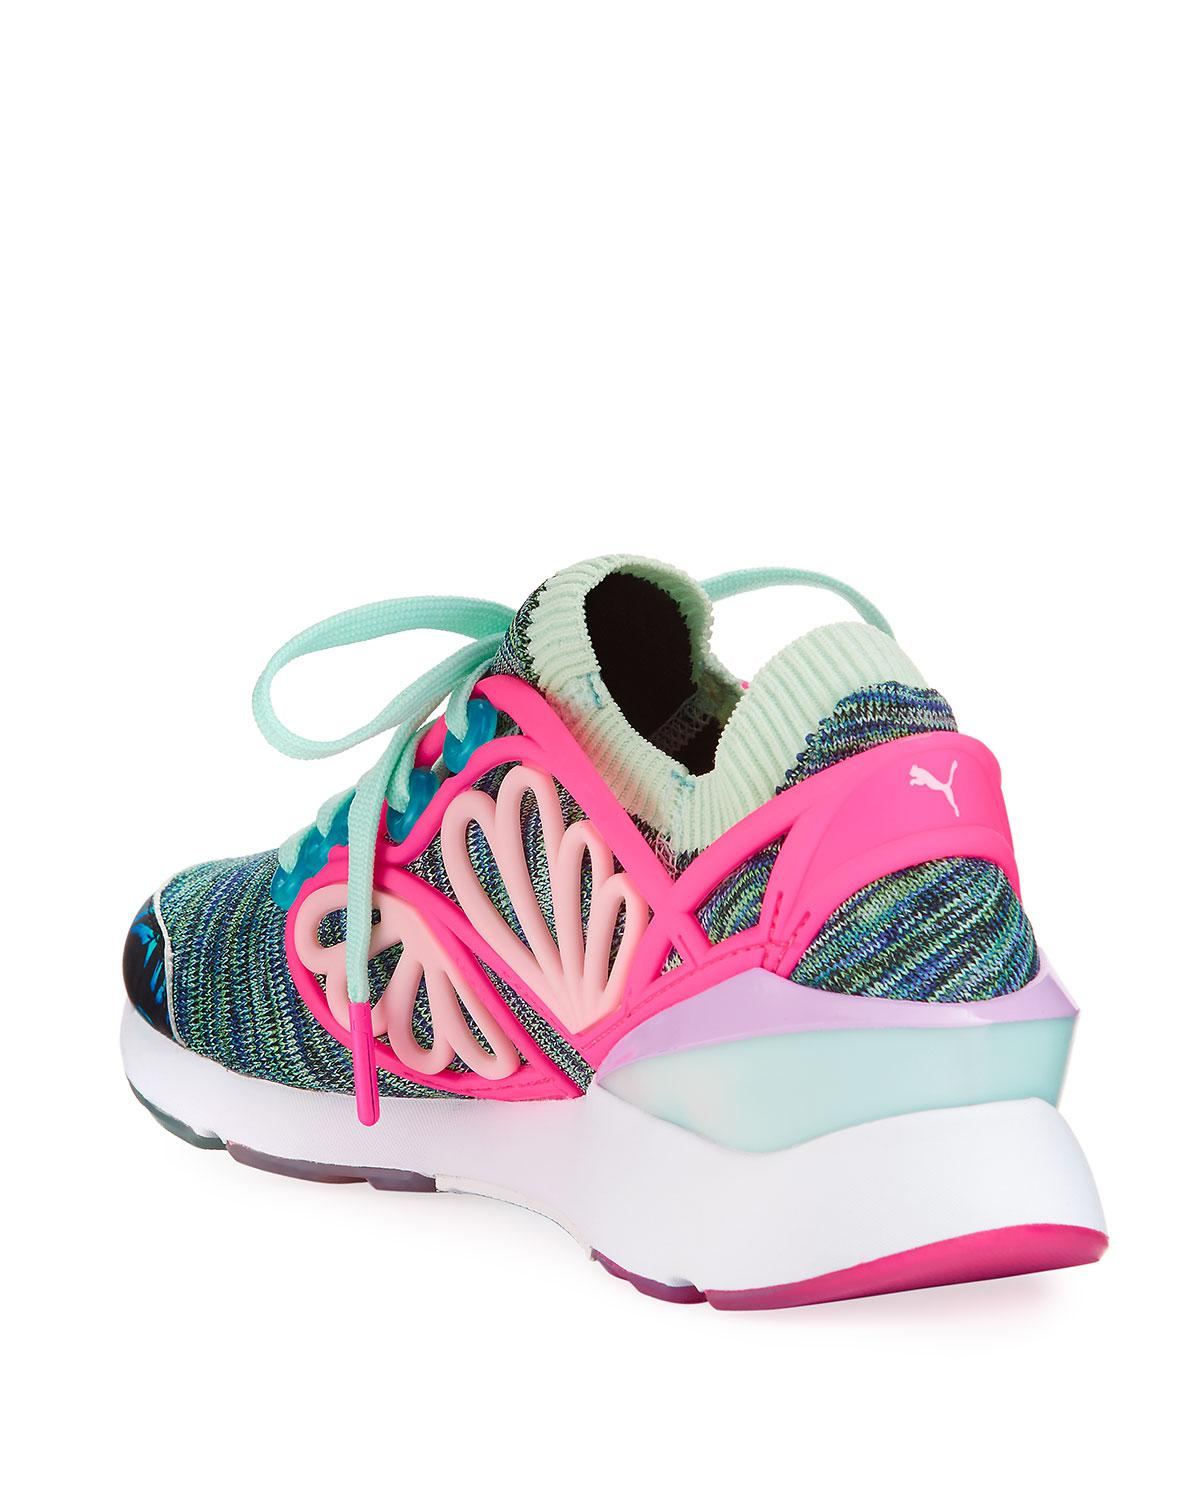 PUMA Pearl Cage Graphic Sneaker Ynj9YcFb